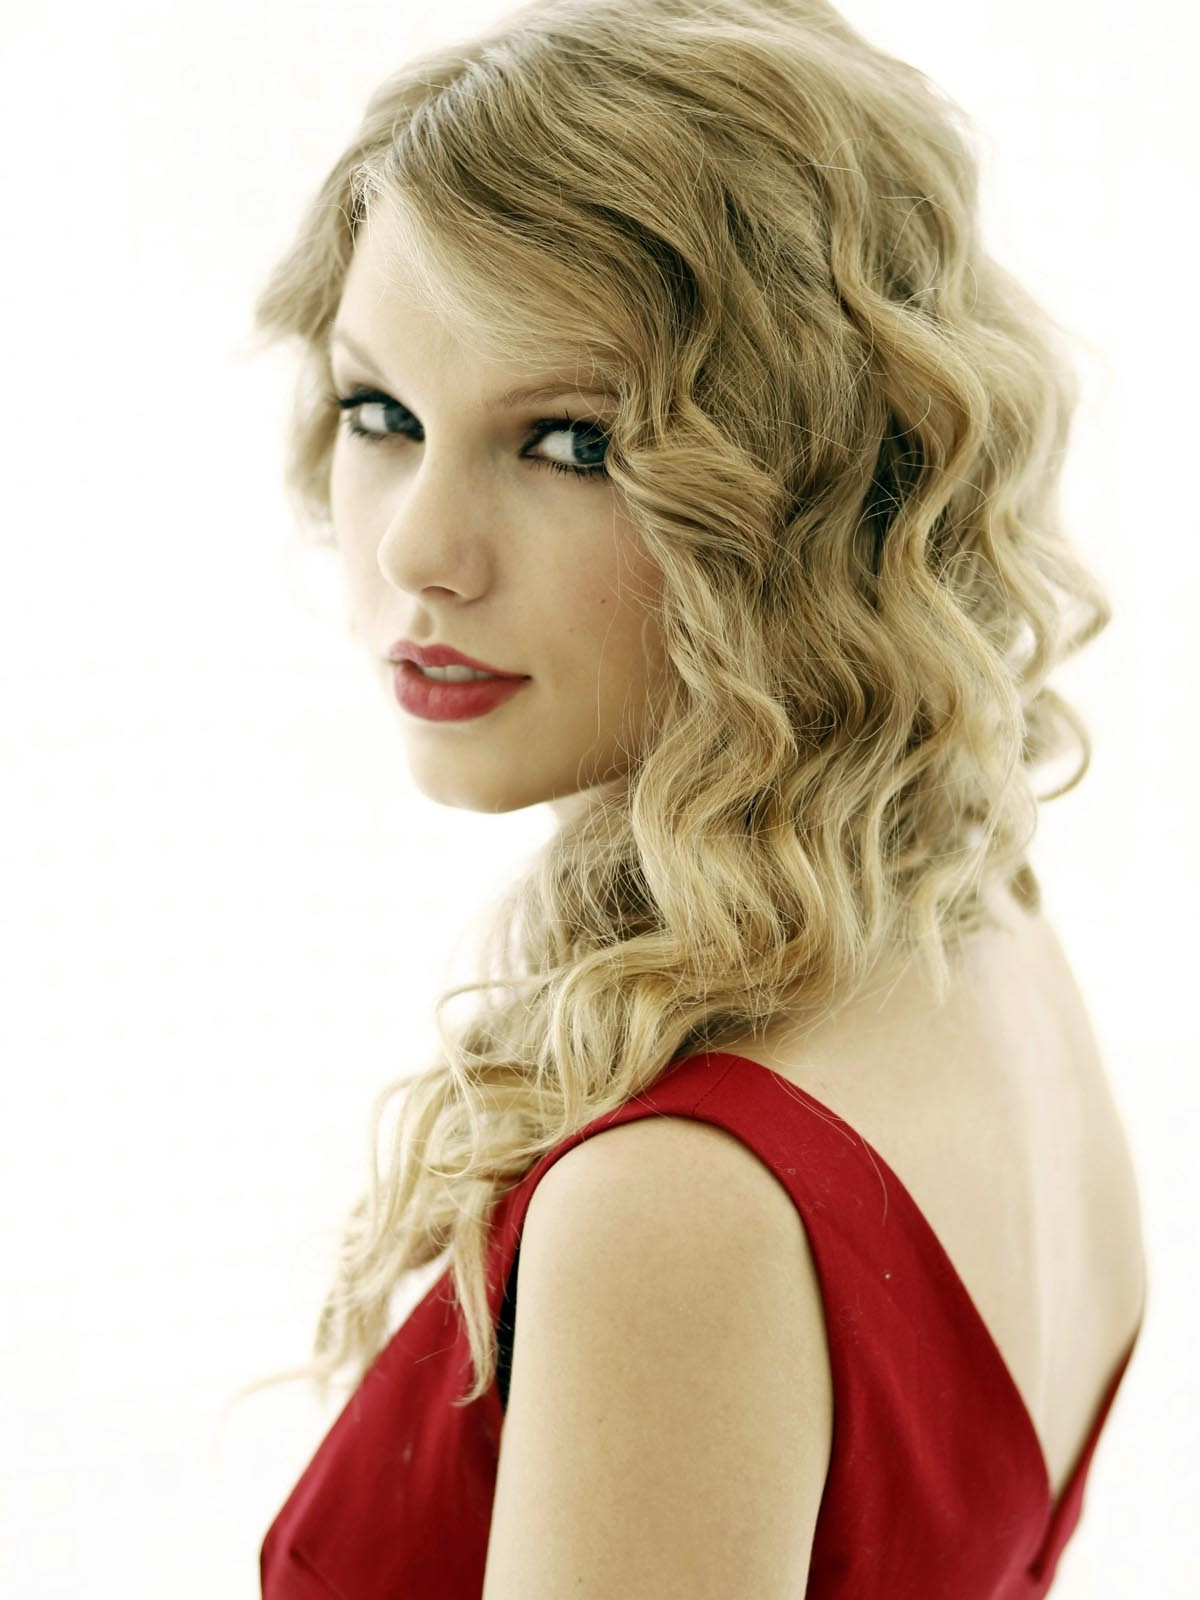 inappropriate celebrity wallpapers taylor swift - photo #21